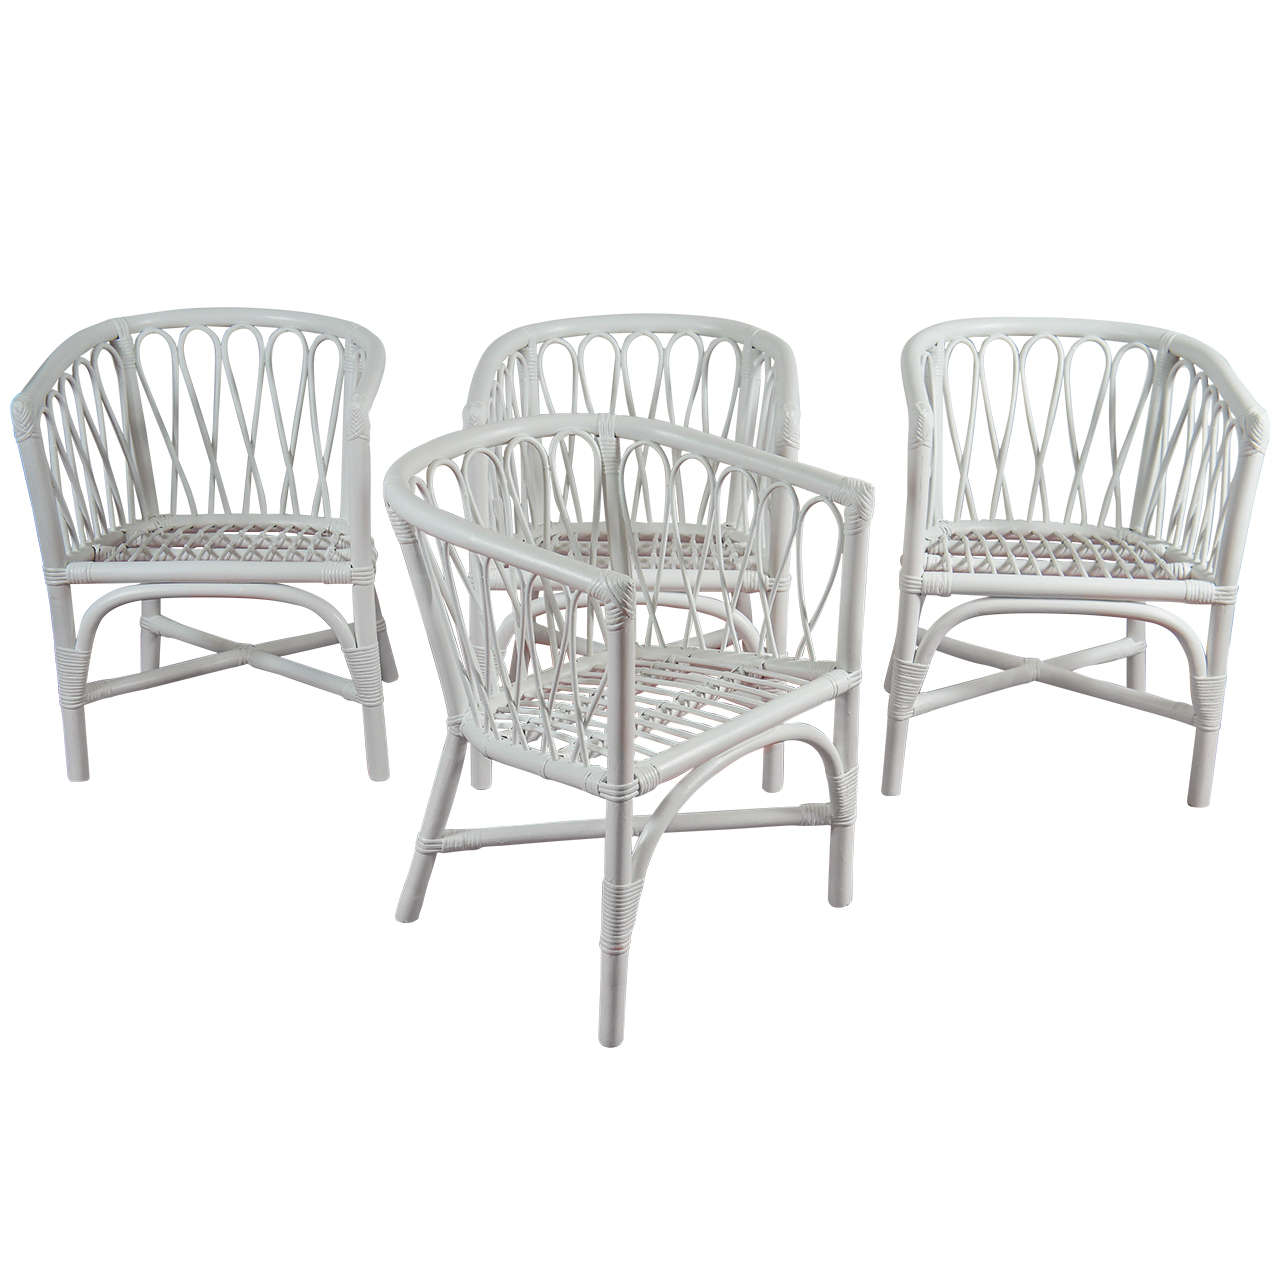 Set Of 4 Bentwood And Rattan Chairs At 1stdibs